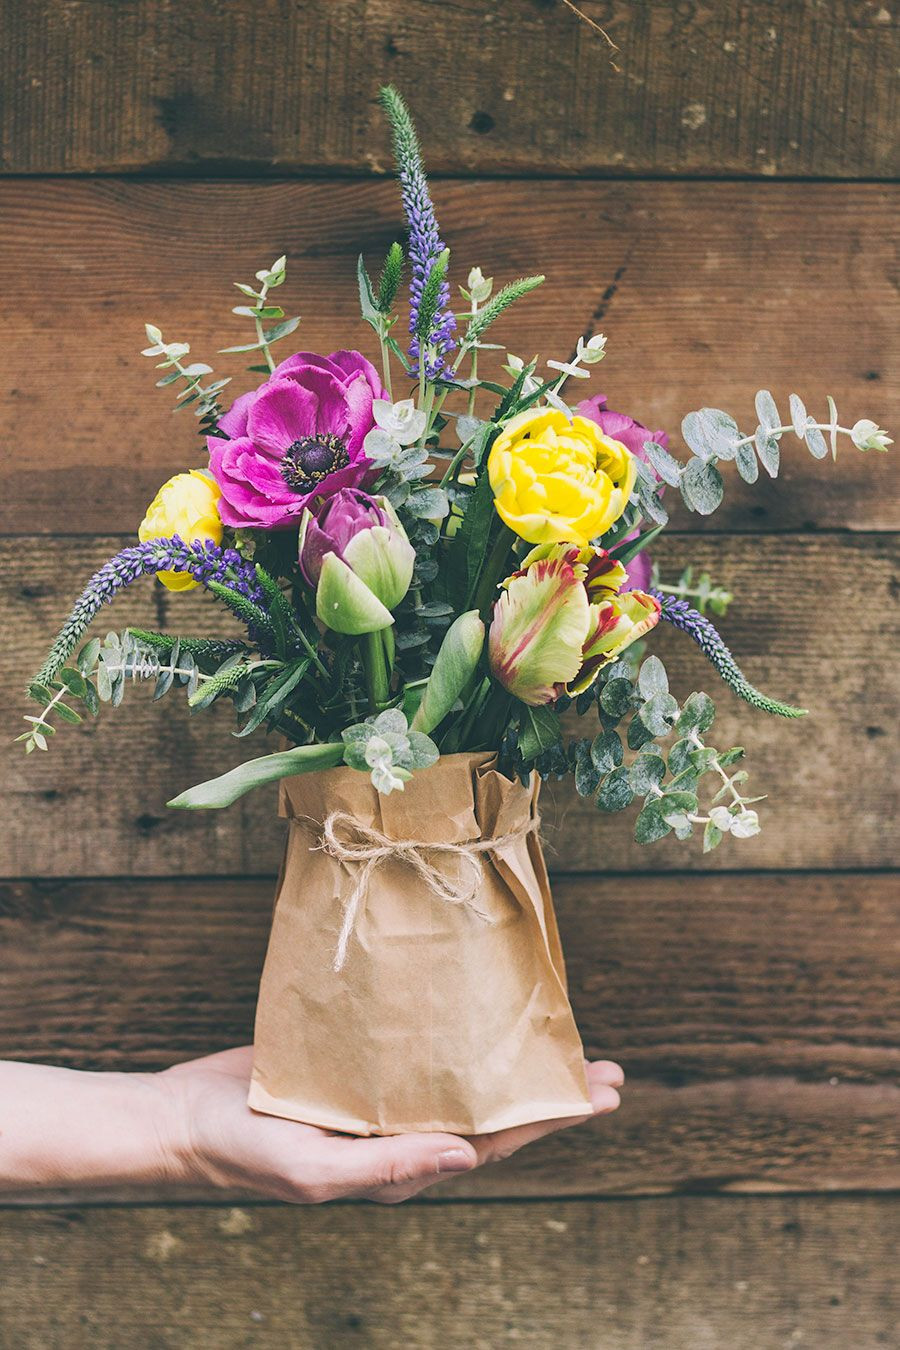 plastic bag flower vases of pop beautiful flowers in a paper bag and tie with a small piece of for pop beautiful flowers in a paper bag and tie with a small piece of string for a vintage tou